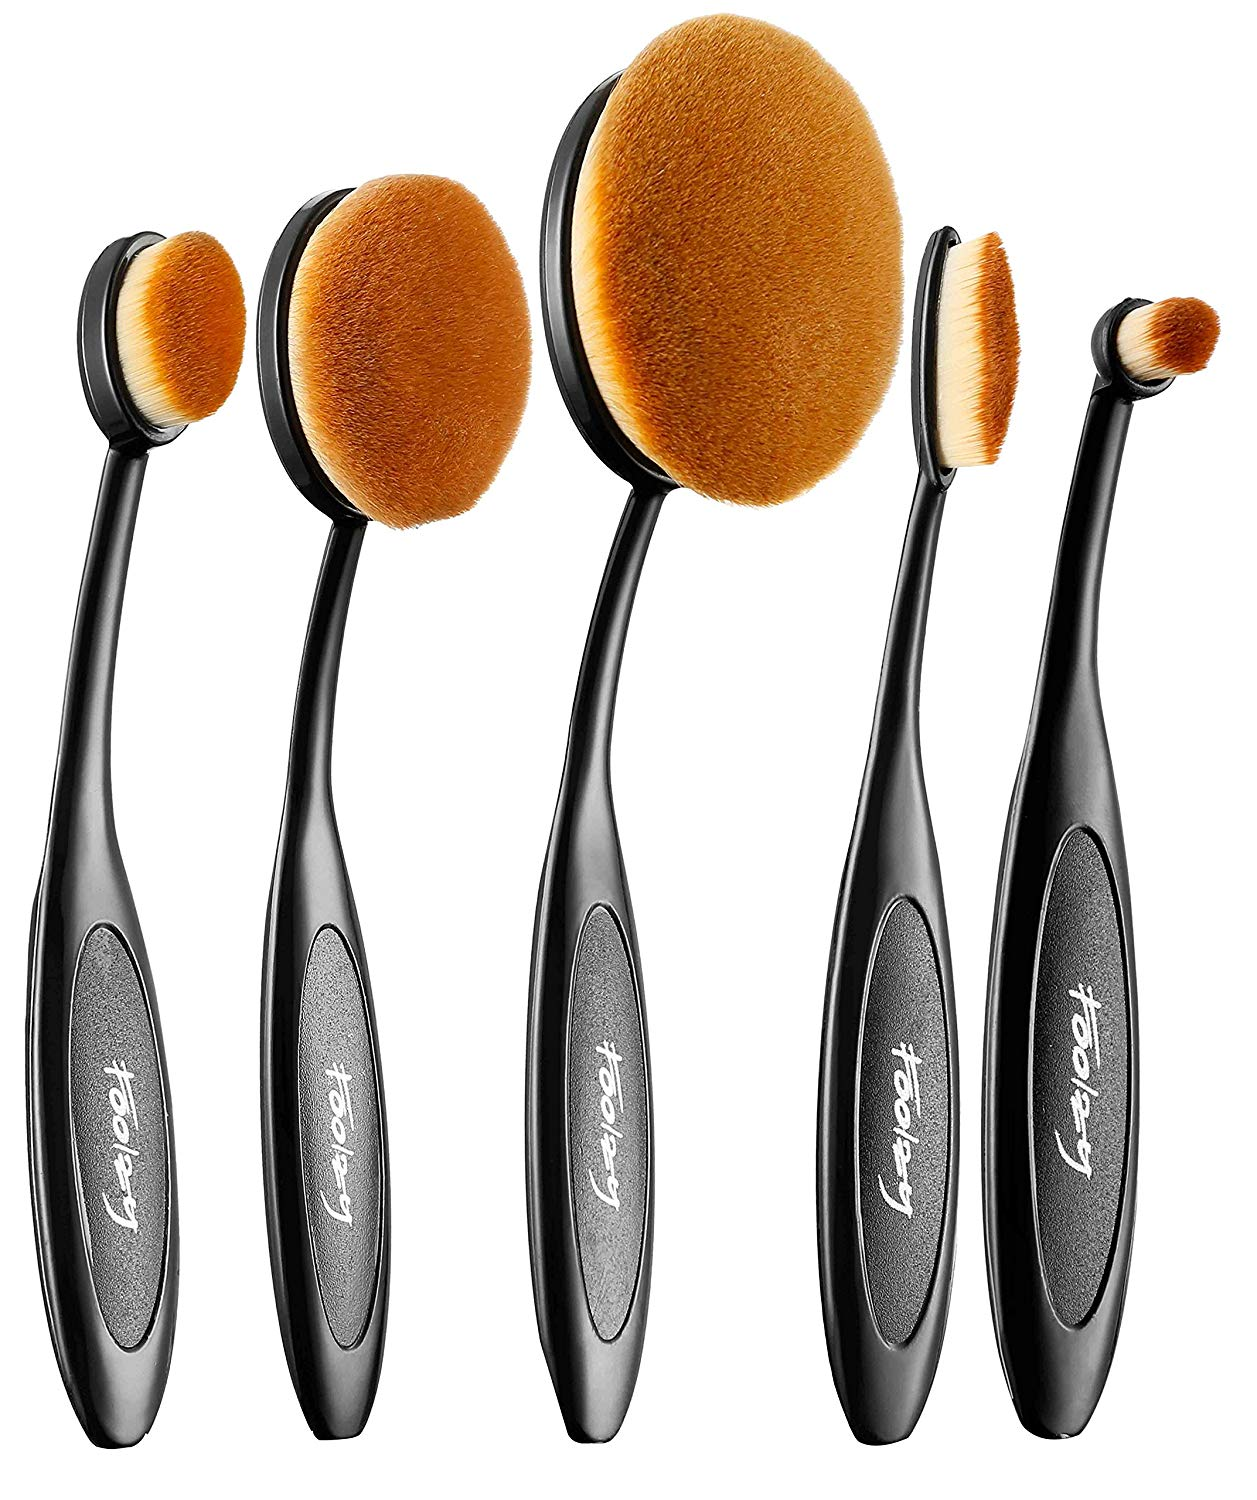 How to use make up brushes for blending inks - Pros and Cons - by Khyati Kothari 2